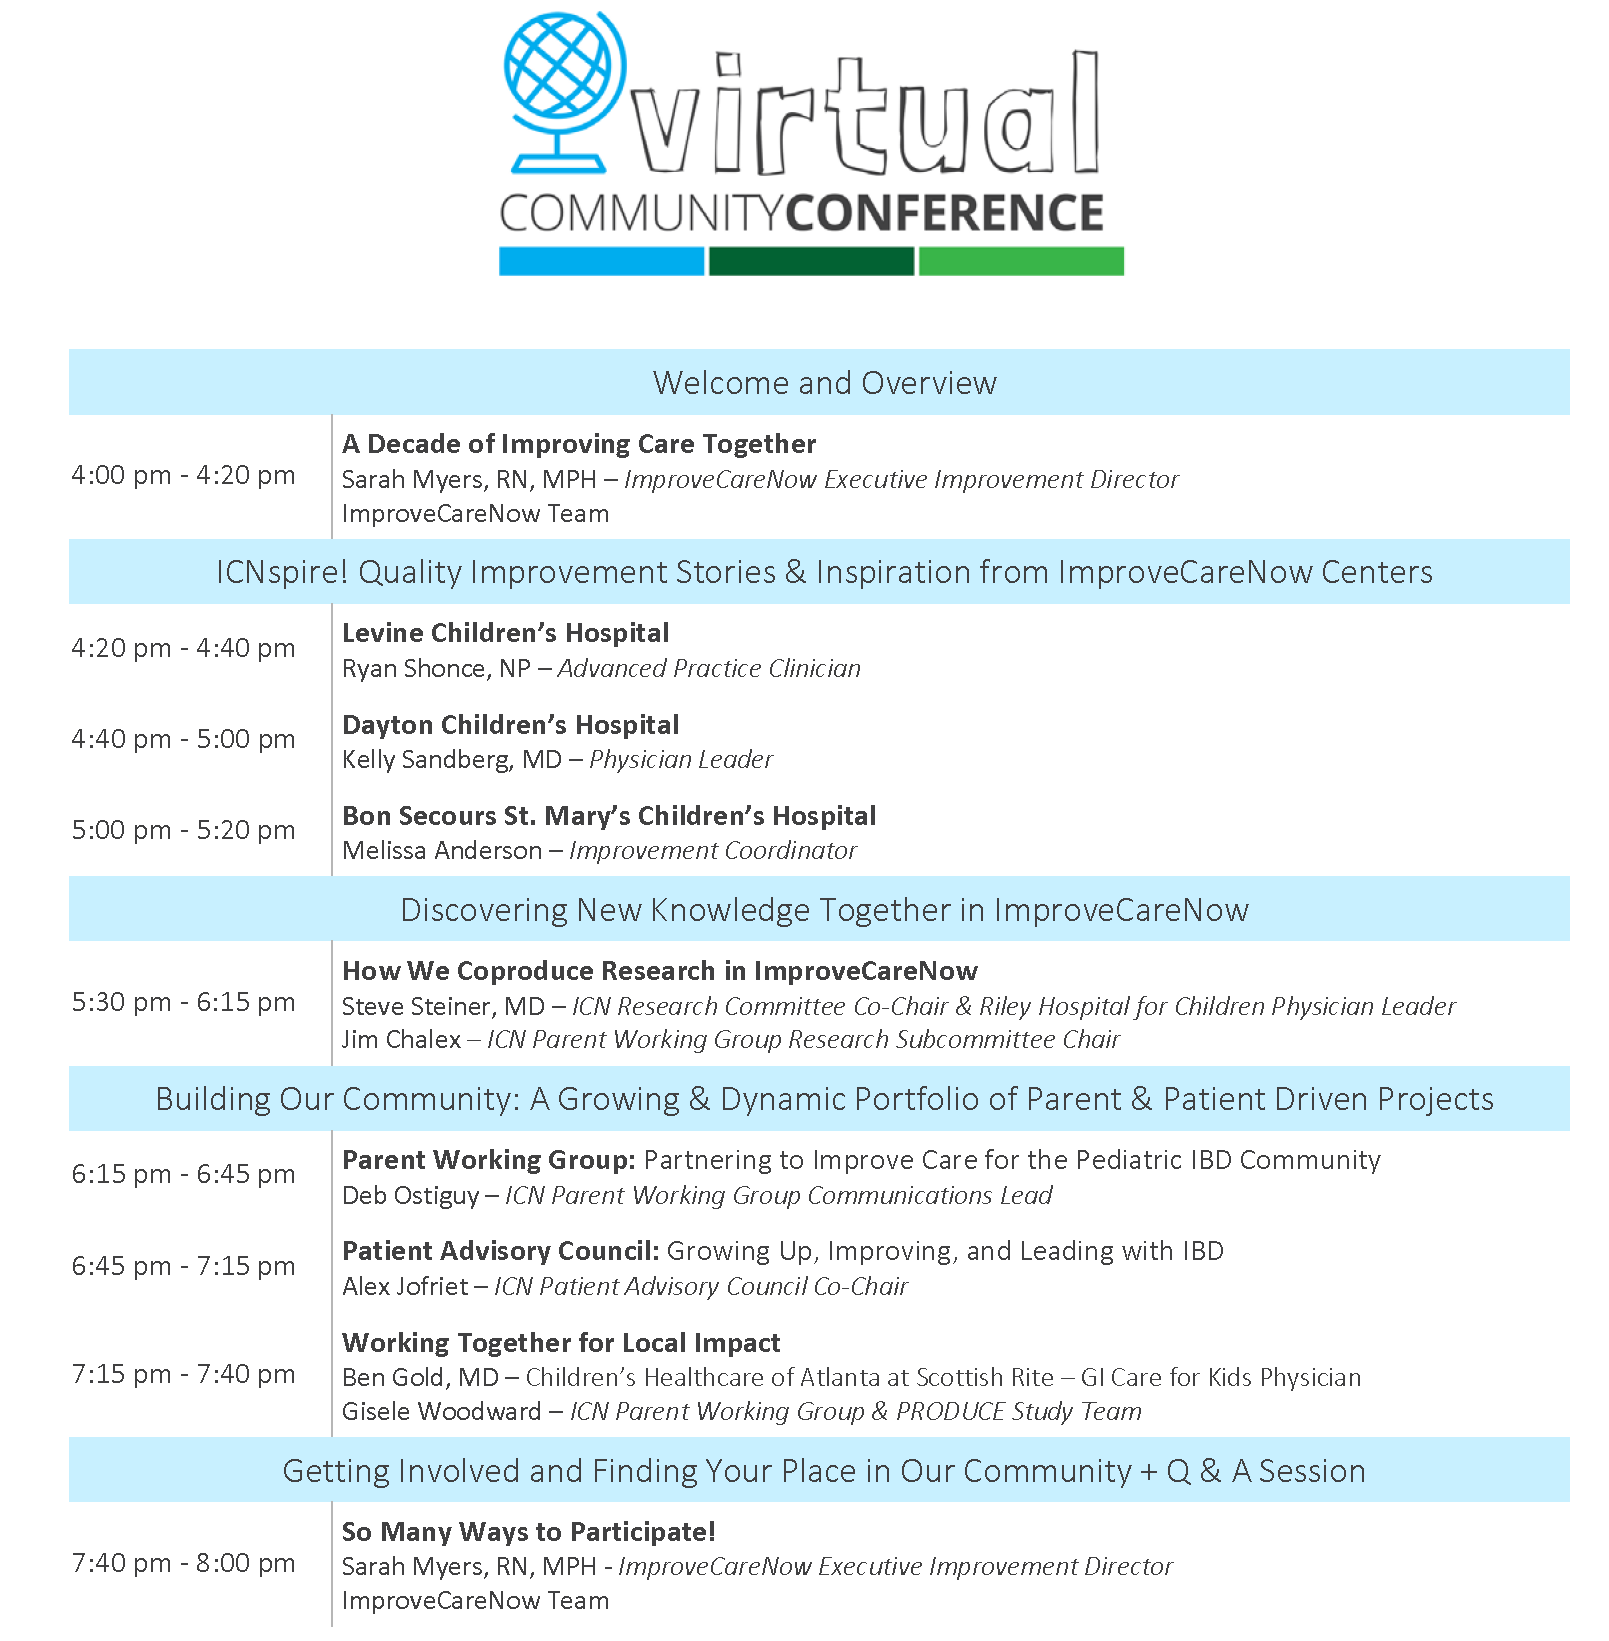 Agenda_Fall_2017_Virtual_Community_Conference_cropped.png